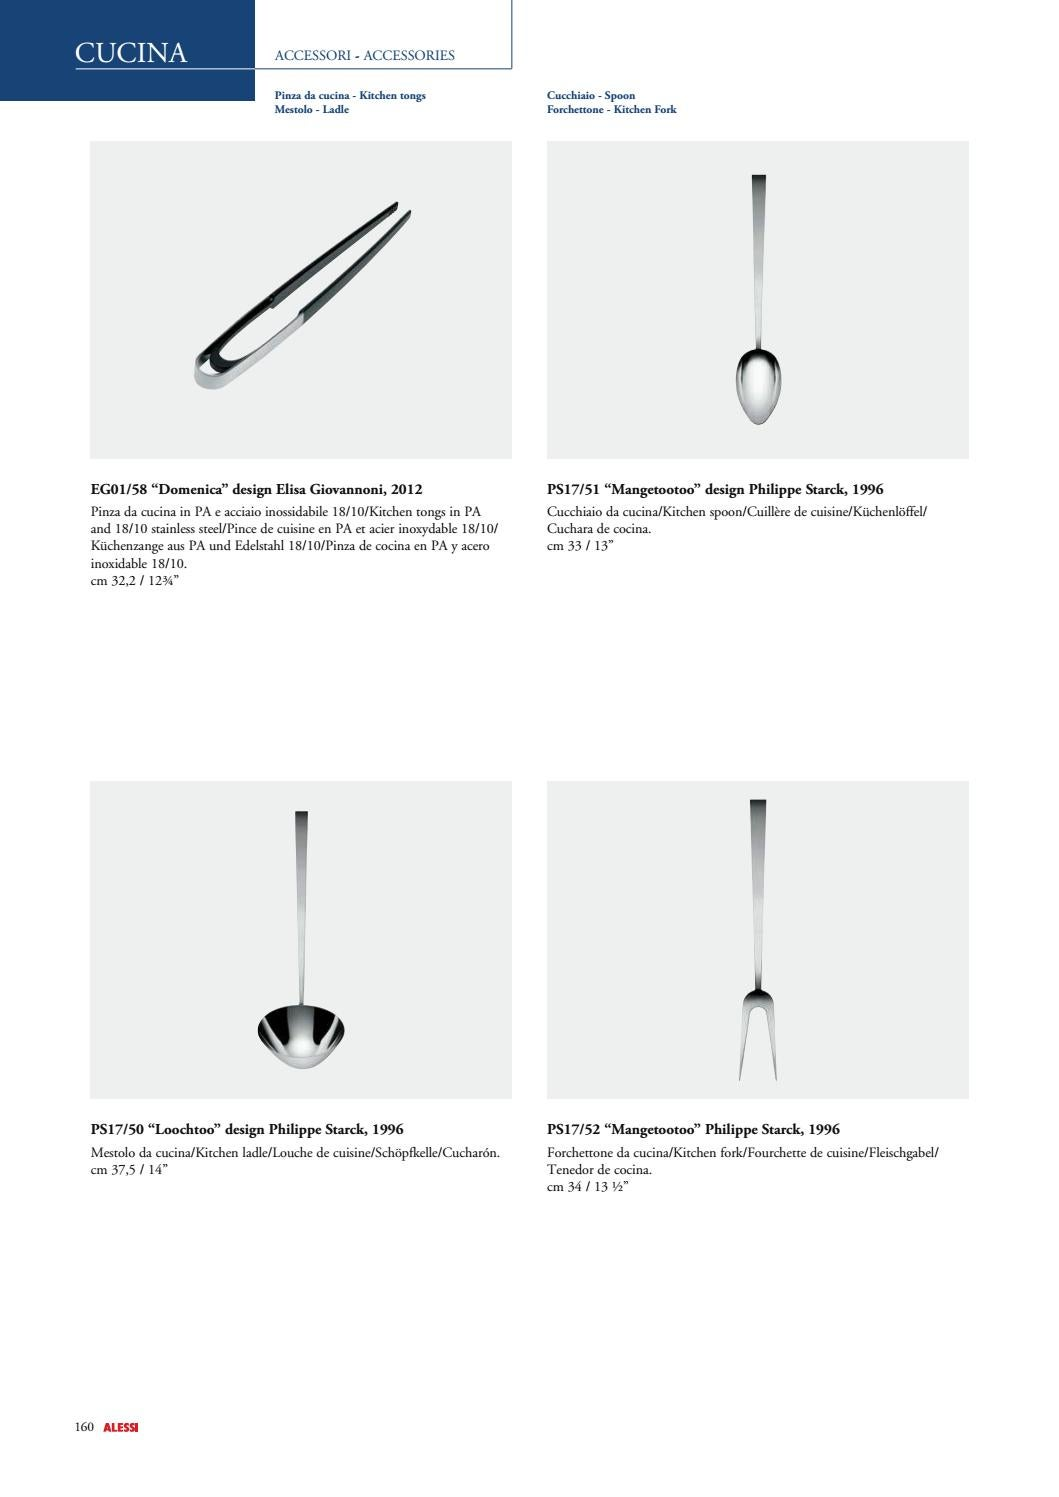 Alessi Catalogue by Alessi s.p.a. - issuu